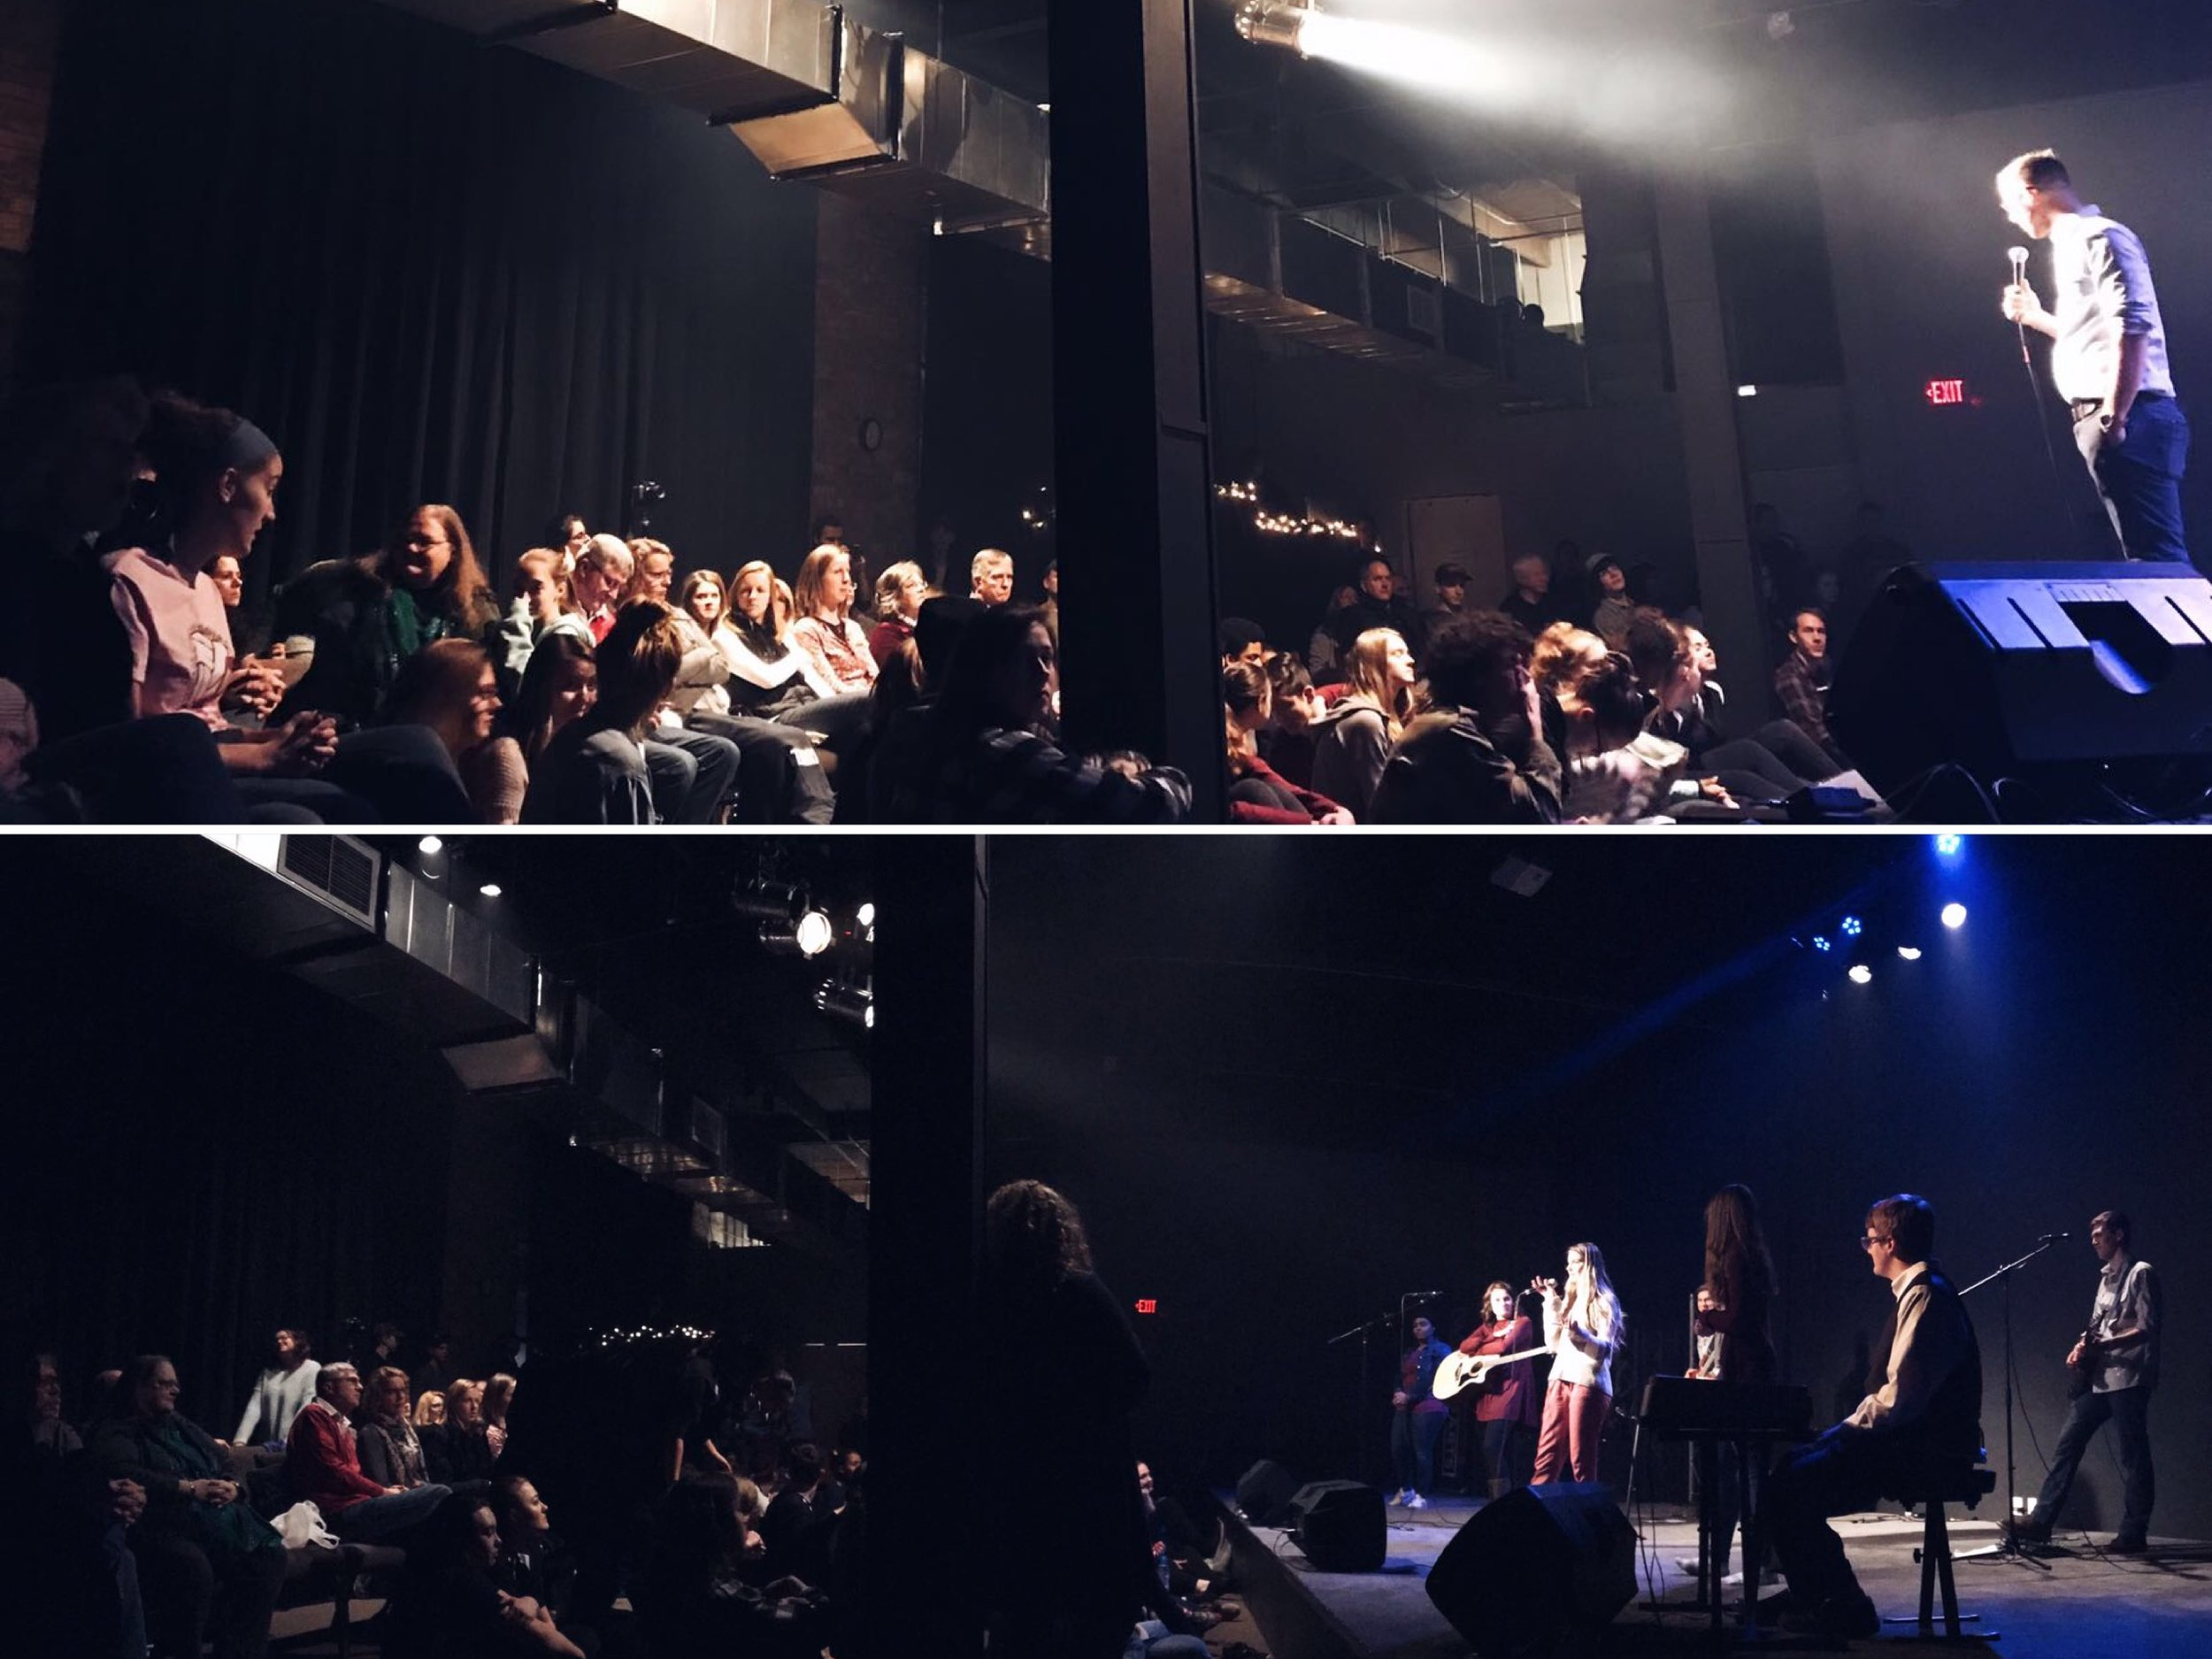 WorshipArts Apex in the new building, Dec 2018